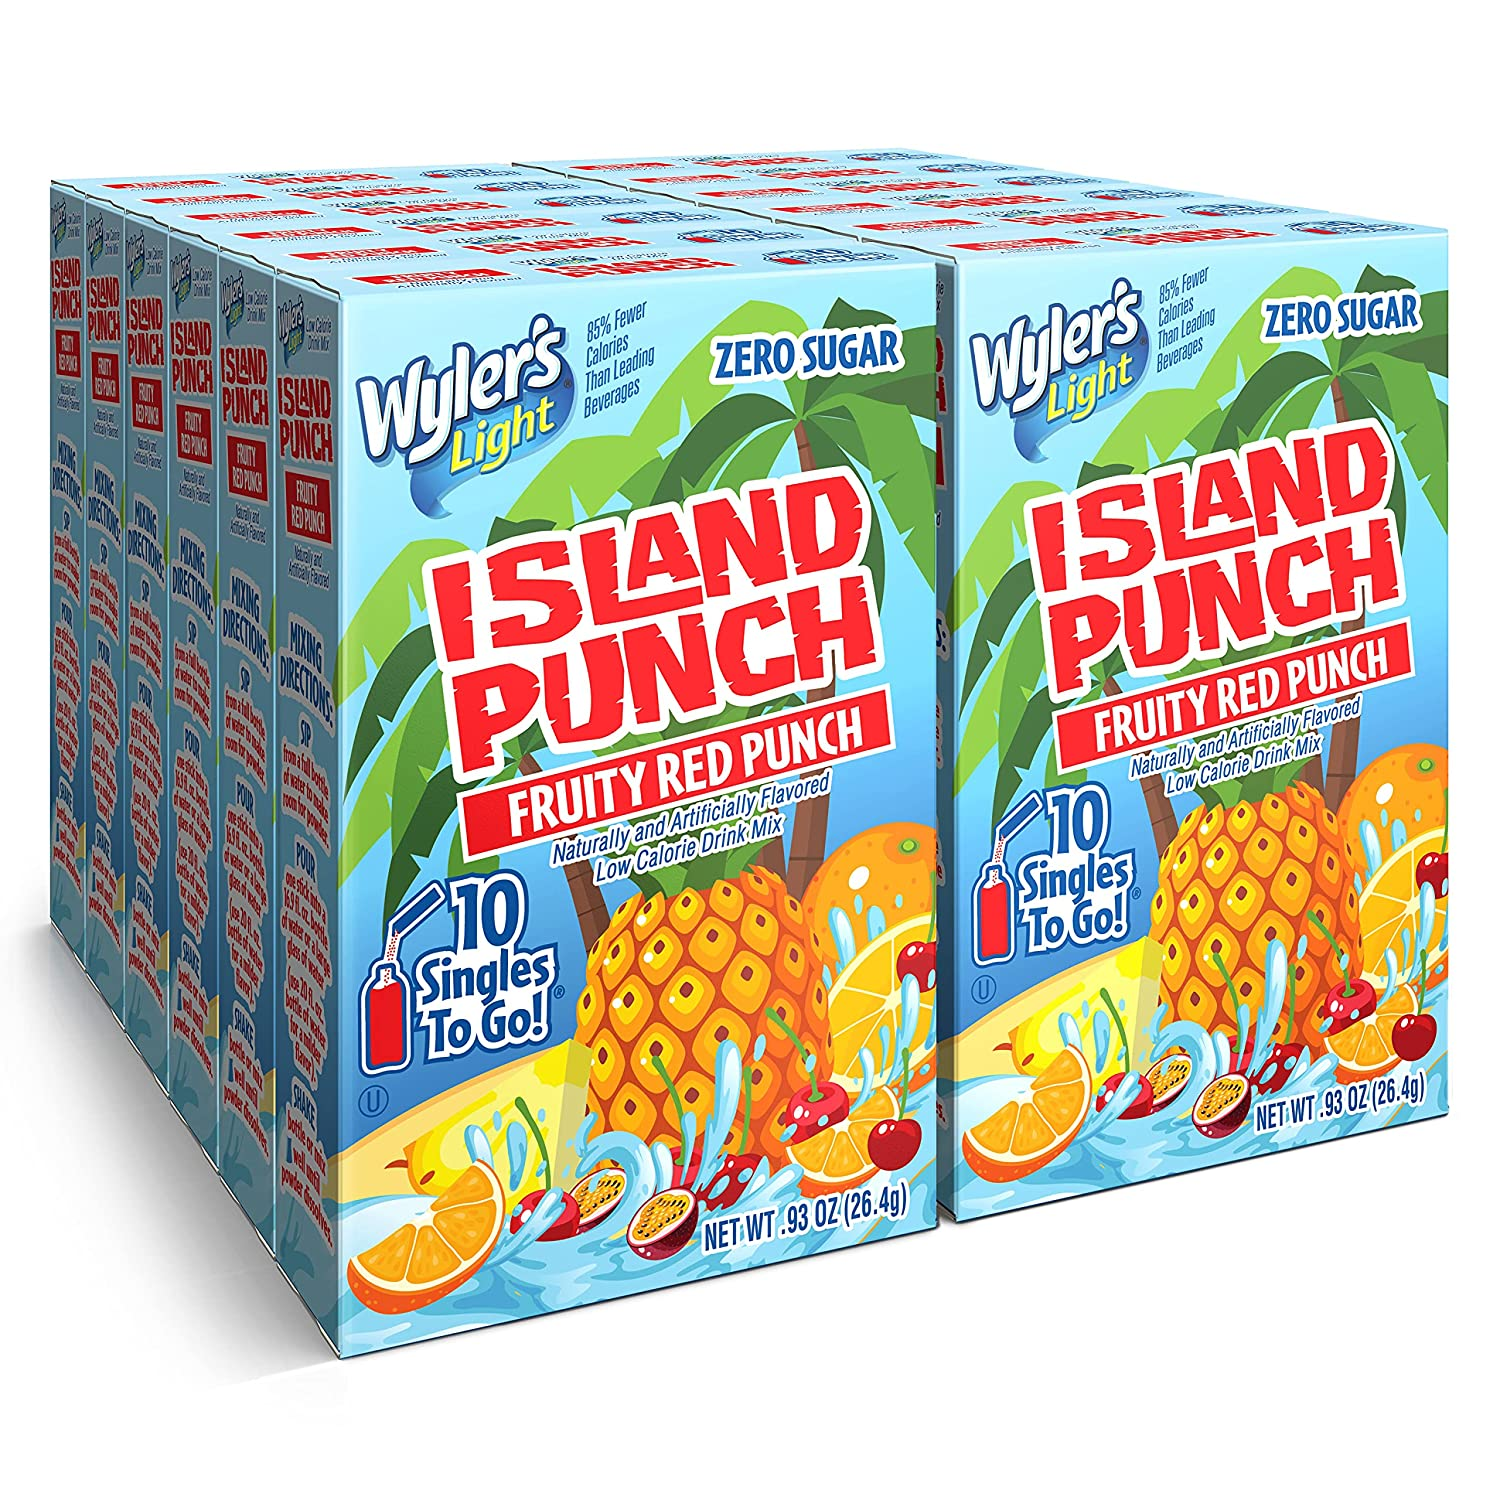 Wyler's Light Island Punch Singles To Go, Fruity Red Punch, 10-Count per Box (12 Pack) – Low Calorie Powdered Drink Mixes, Caffeine Free, Gluten Free, and Zero Sugar